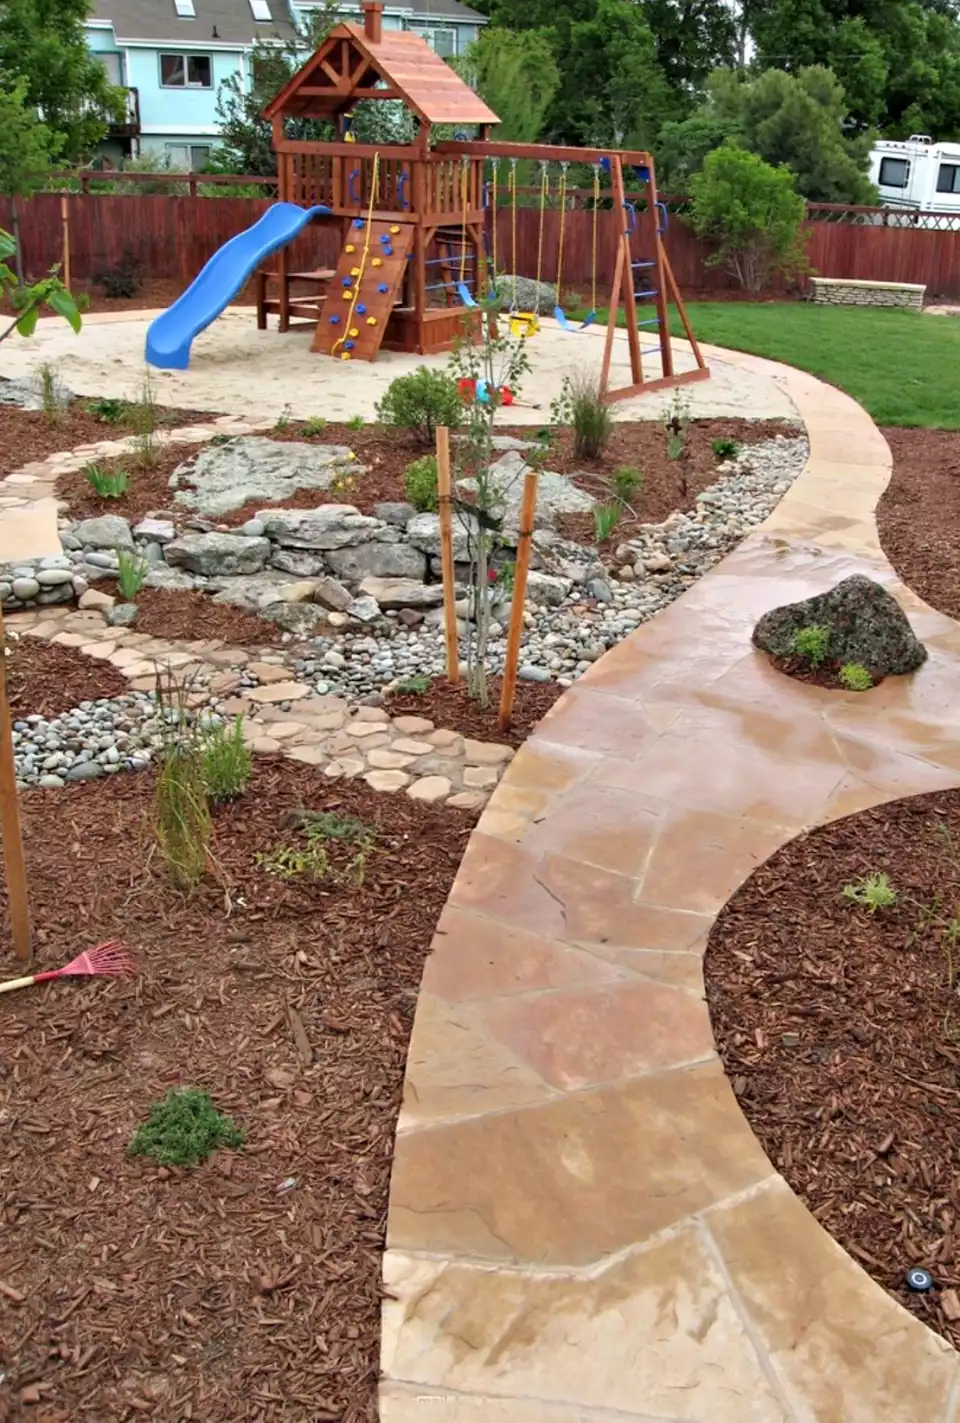 10 Best Garden Ideas to the makeover of your outdoor space for kids